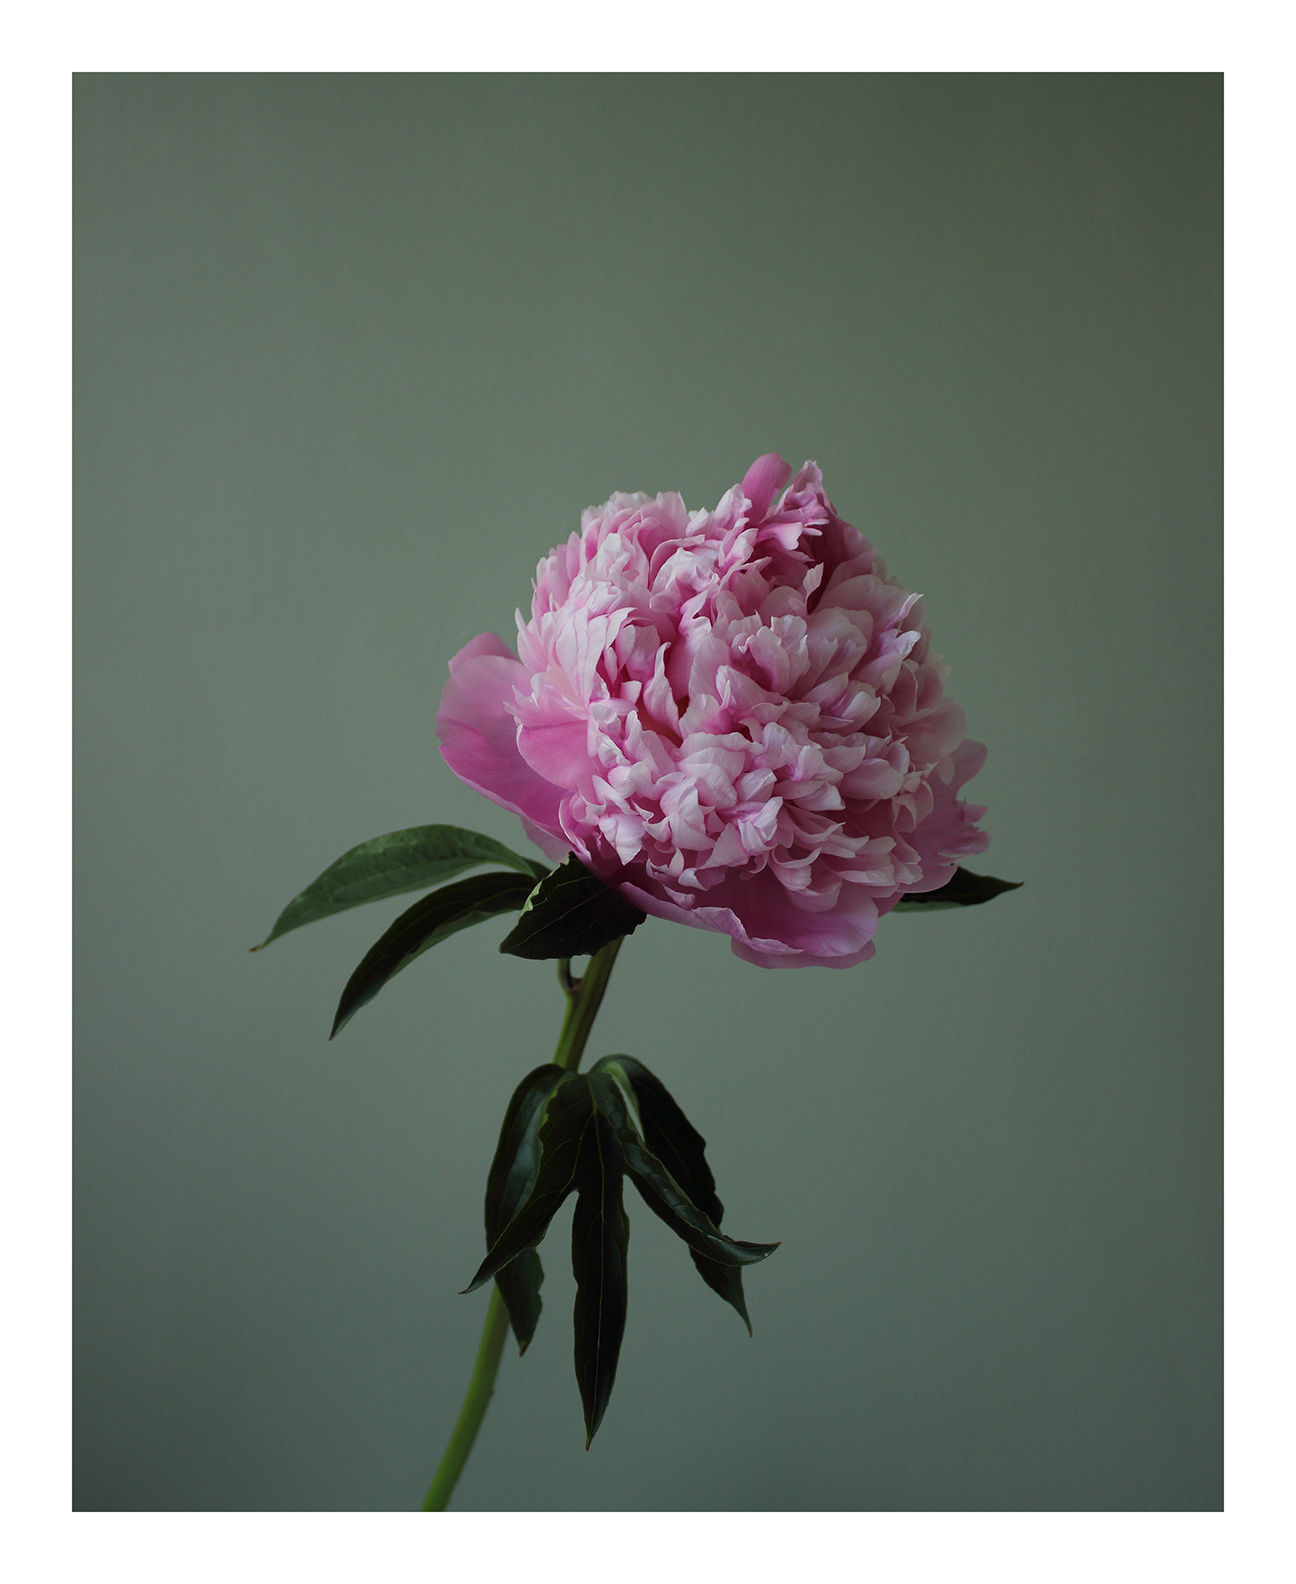 Going Over: Pink Peony